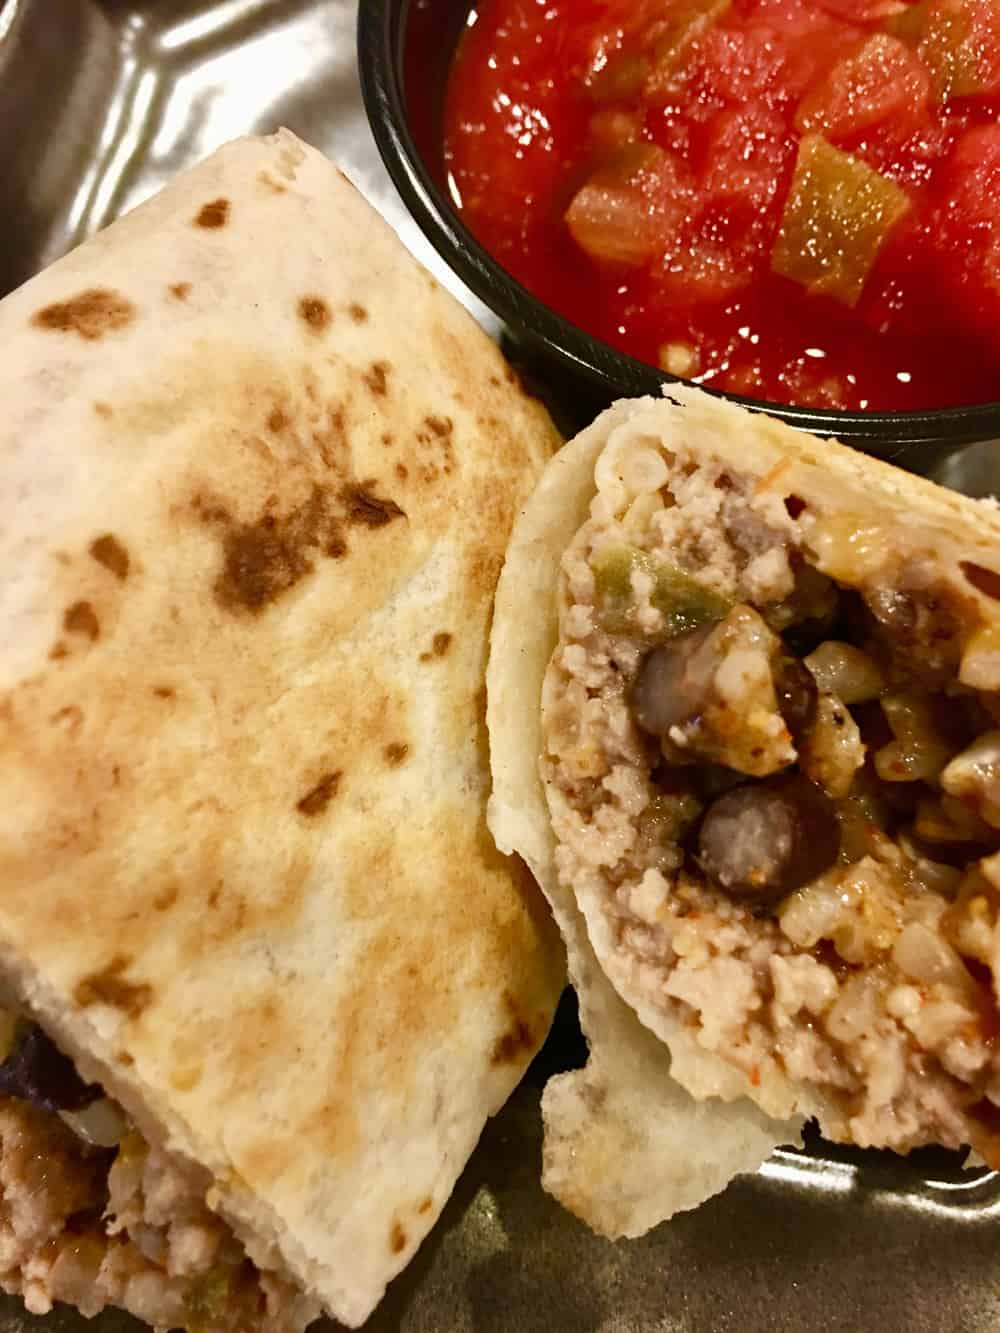 Freezer Burritos with ground turkey, brown rice, black beans, and cheddar cheese is an easy recipe for make ahead burritos that you freeze. Healthy and full of protein, these are a great weeknight dinner or meal prep food. #freezerfoods #freezerburritos #burritos #makeahead #mealprep #groundturkey #healthy #parenting #protein #easyrecipe #weeknightdinner #blackbeans